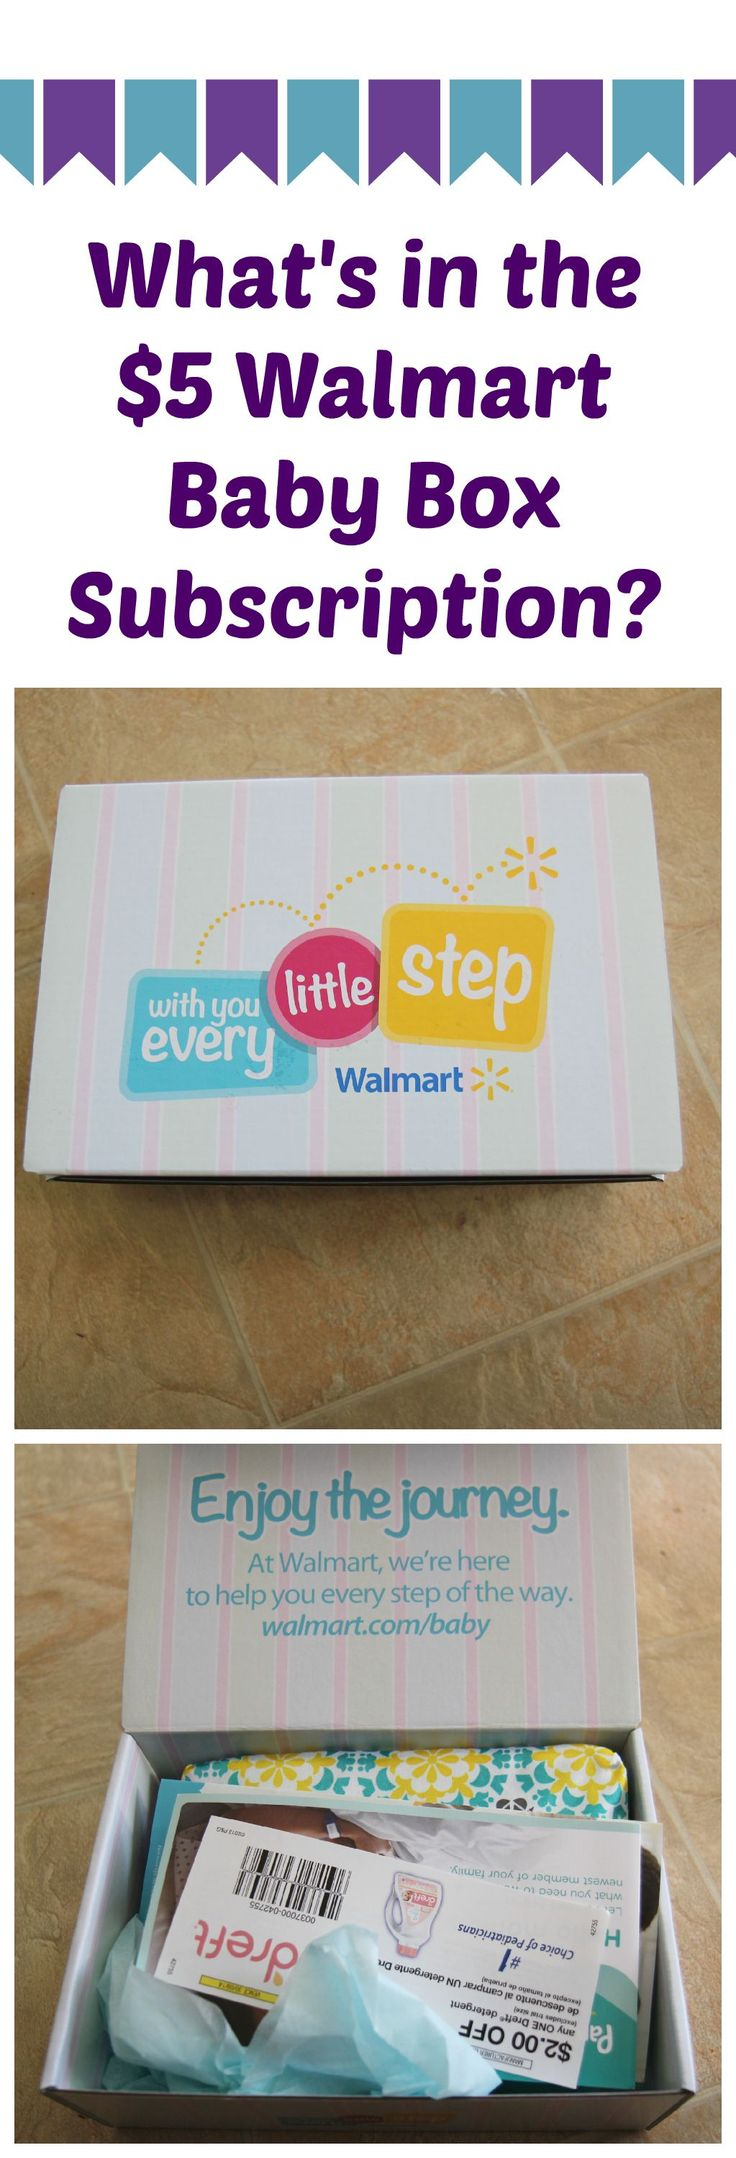 For just $5, you can get this baby box of goodies from Walmart with free shipping! Check out what came inside ours! (Available for 2nd and 3rd trimesters, as well as newborn, infant, and toddlers.)